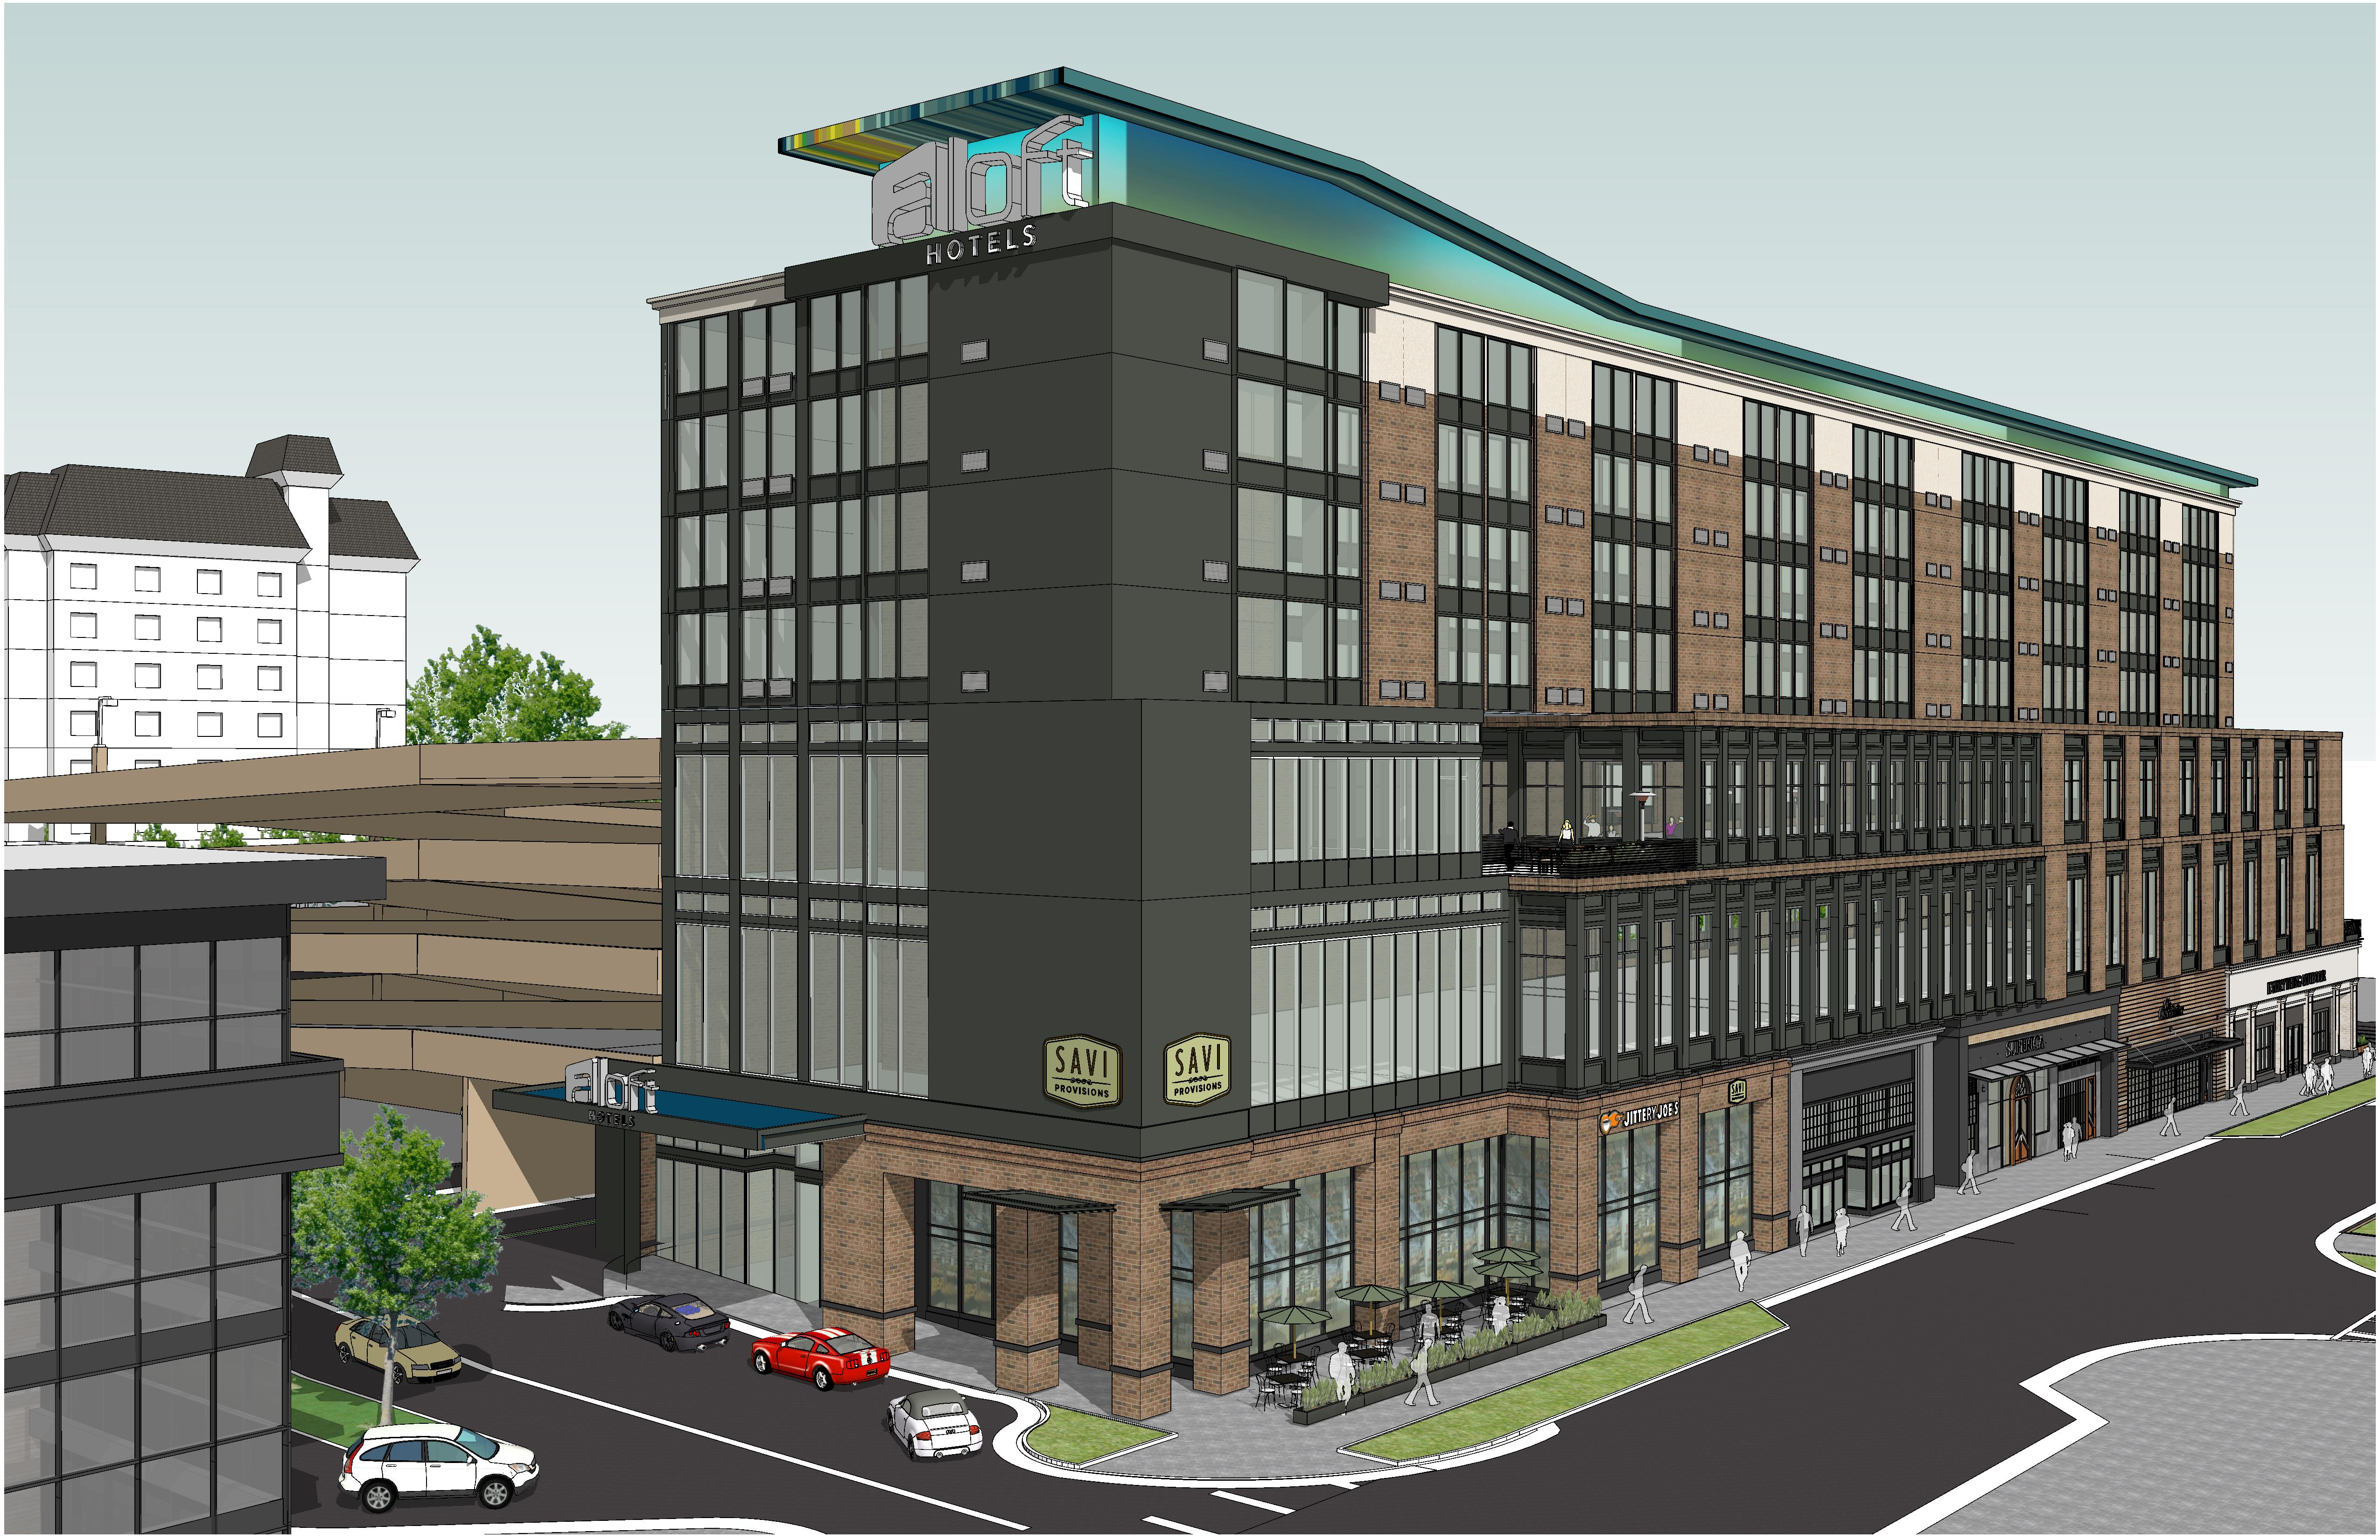 """The forthcoming """"lifestyle hotel"""" at The Battery in a rendering."""